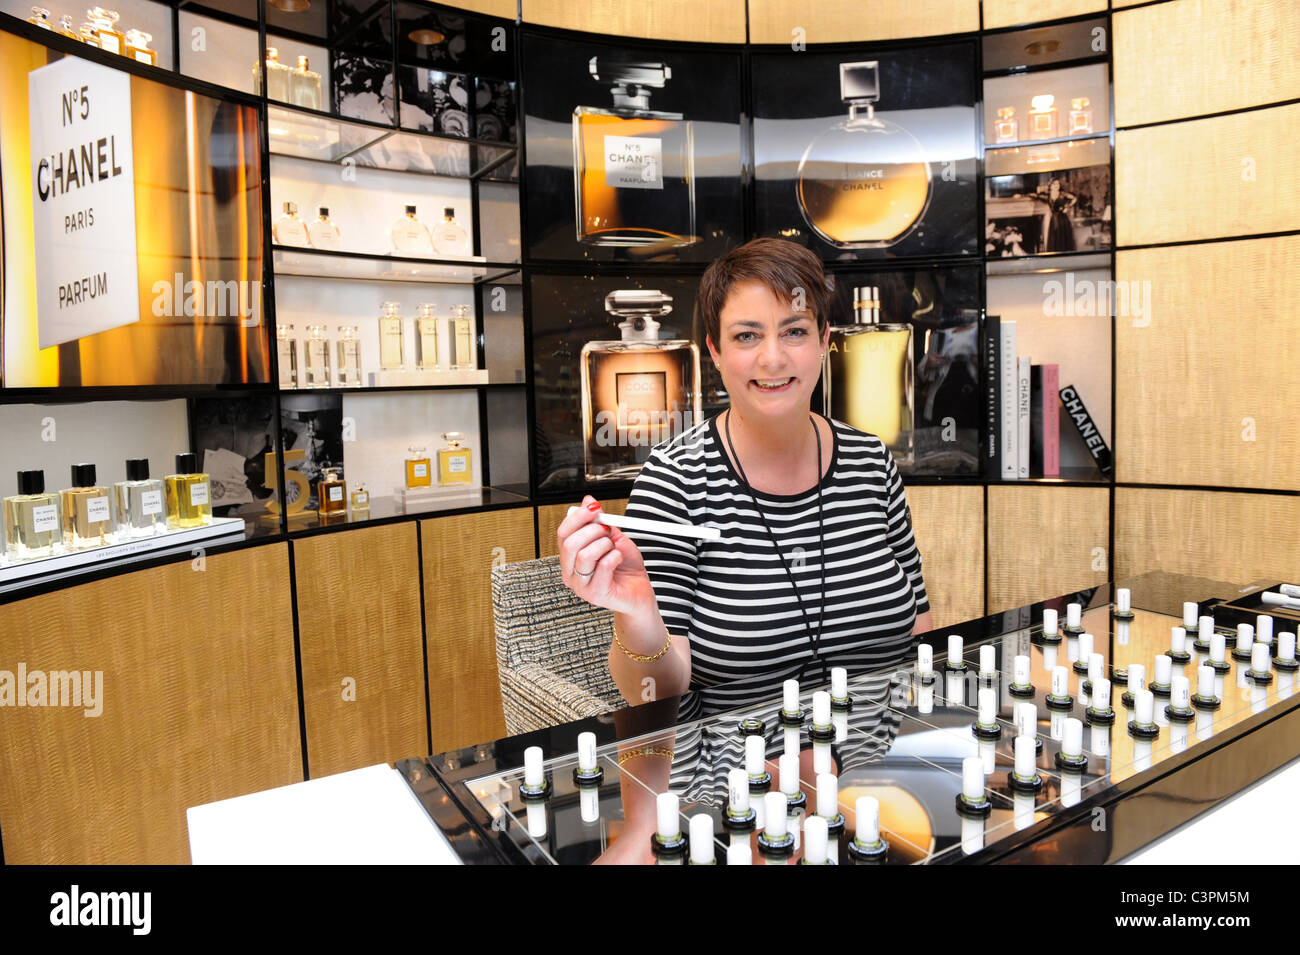 Chanel perfume consultant at Birmingham Airport duty free shop England Uk - Stock Image